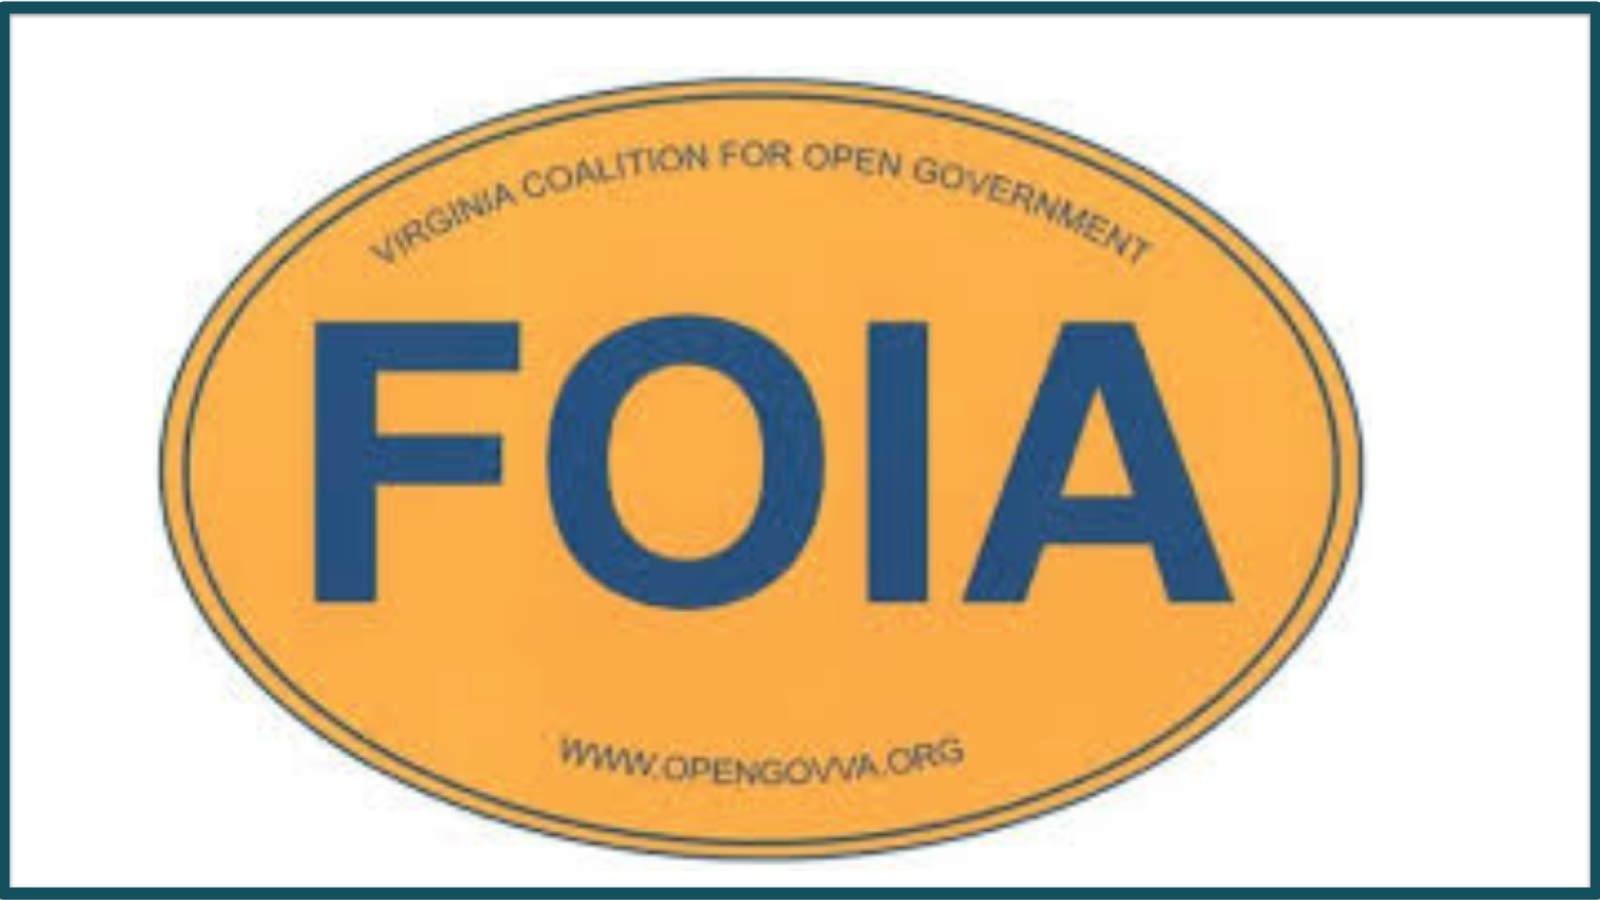 Virginia Coalition for Open Government